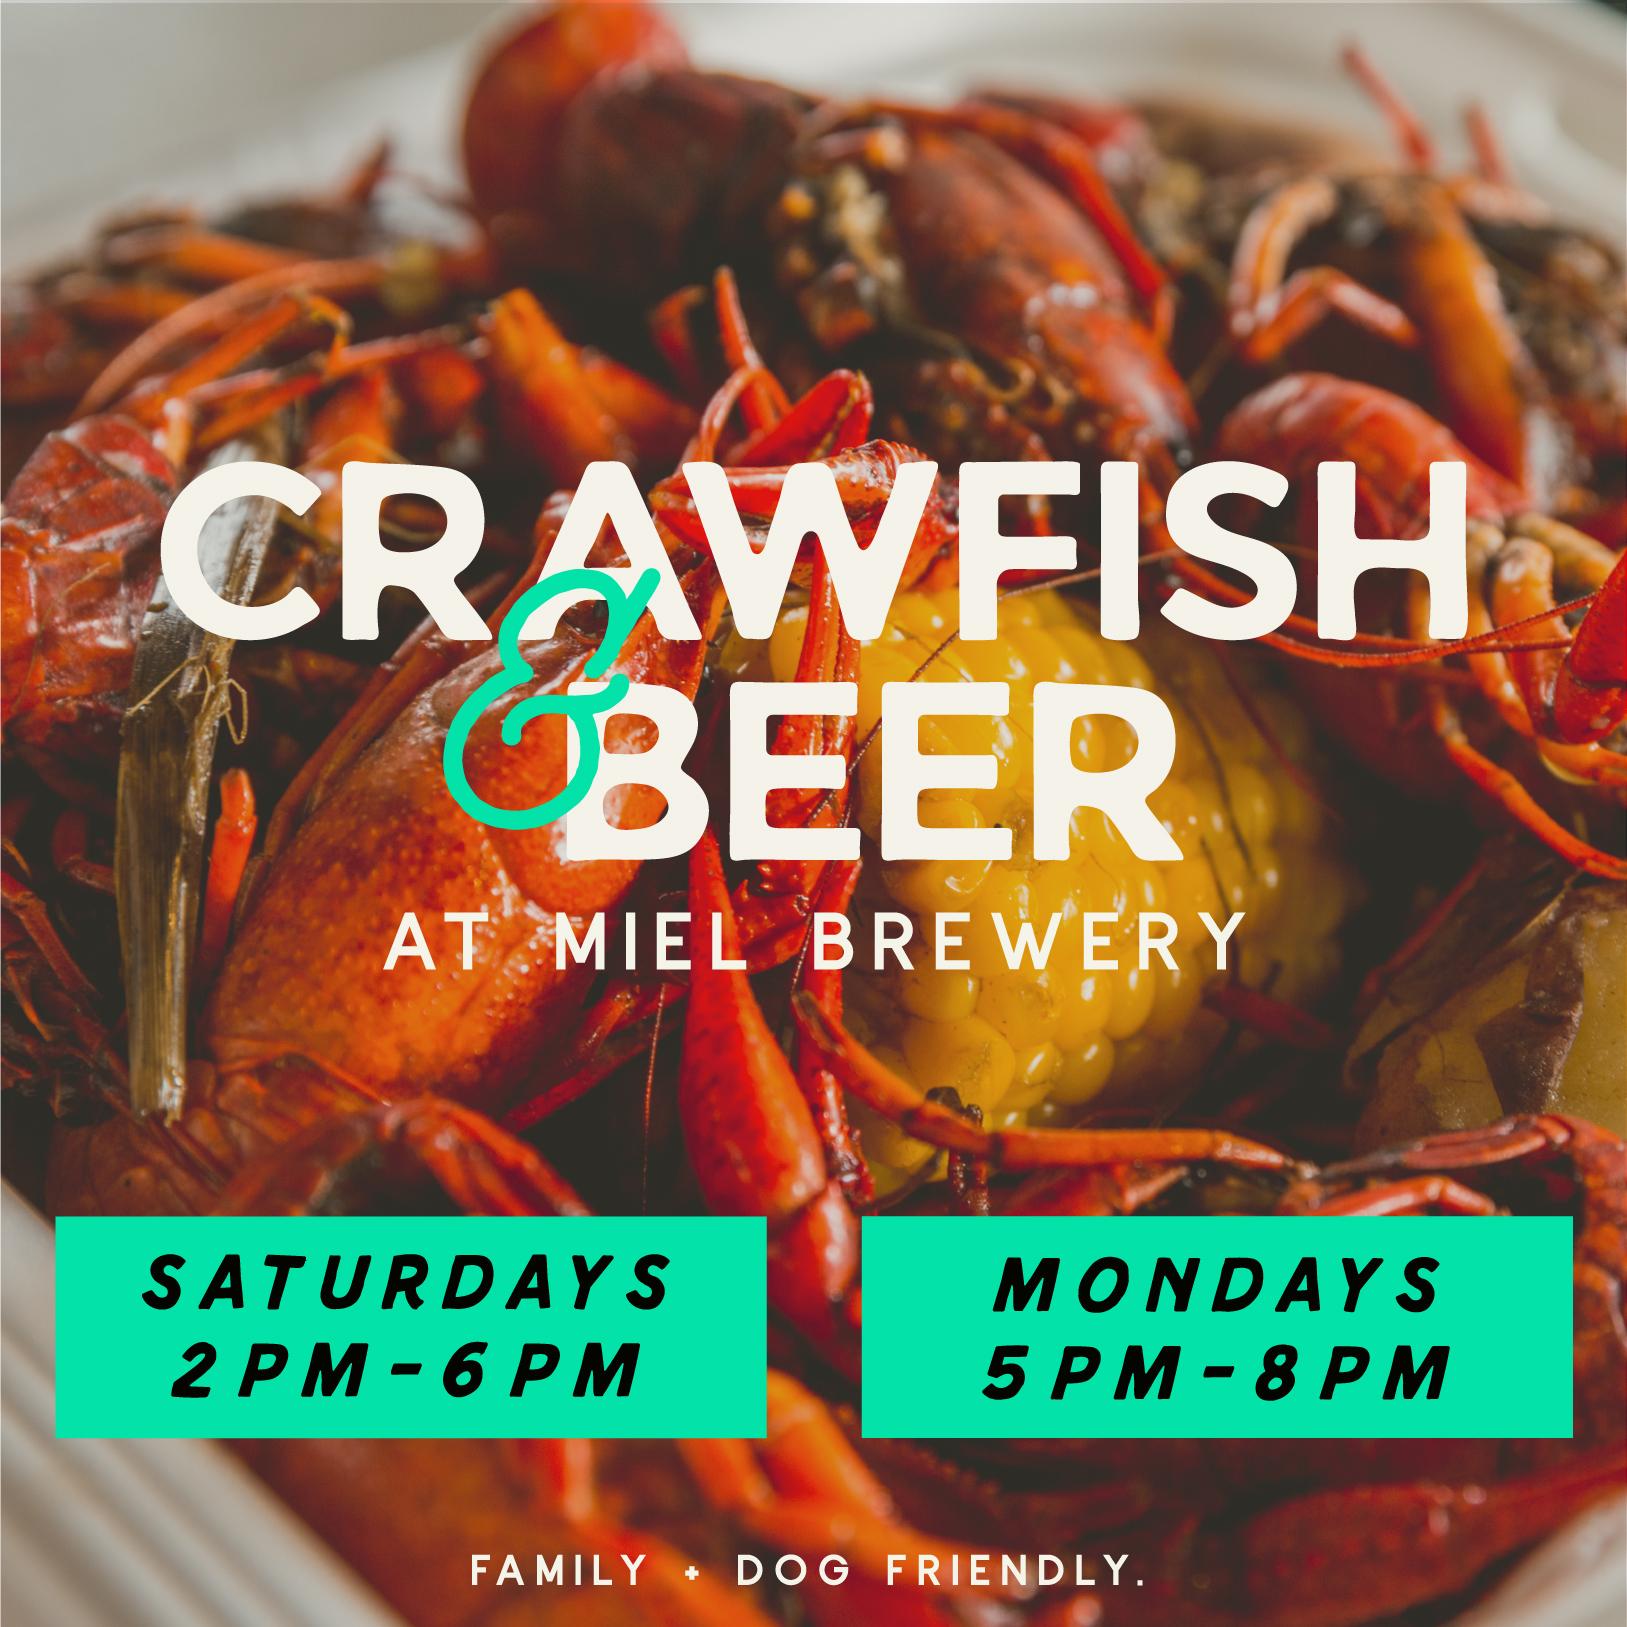 Miel Brewery_New Orleans_Food_Scramuzzas Seafood boil